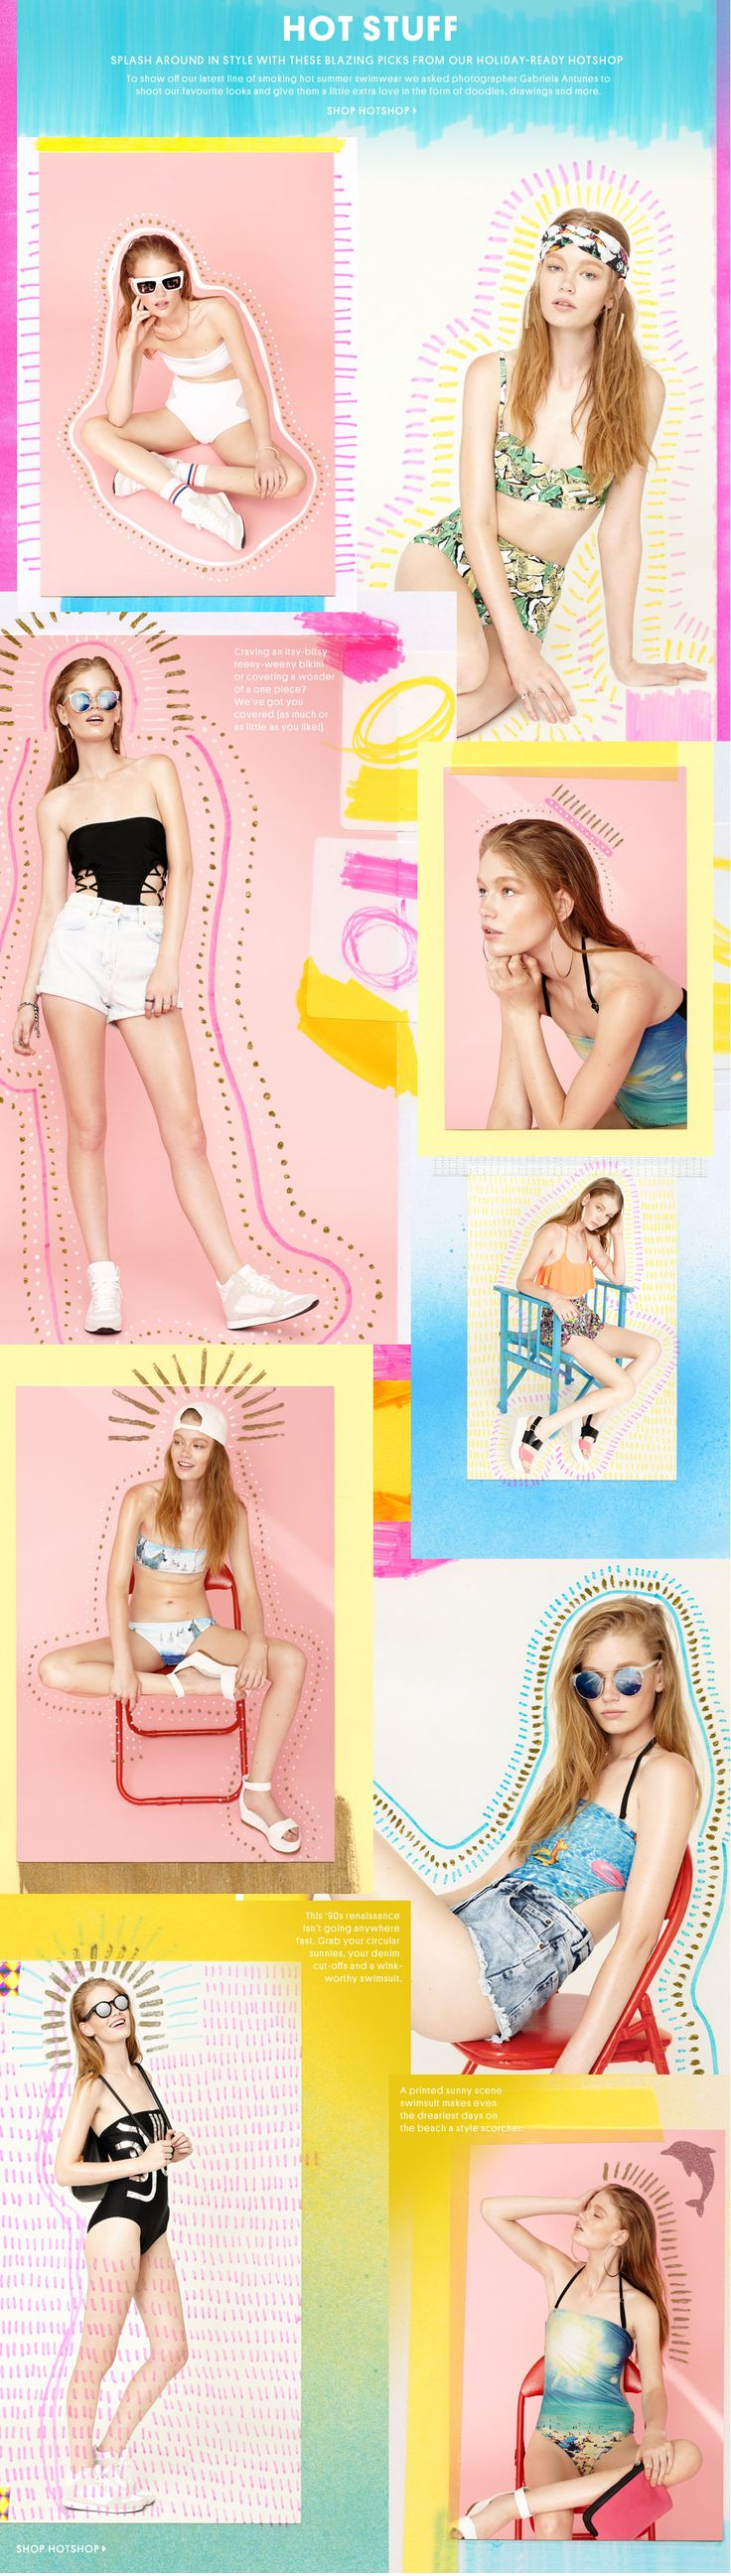 Hot stuff - Topshop USA Catalogo